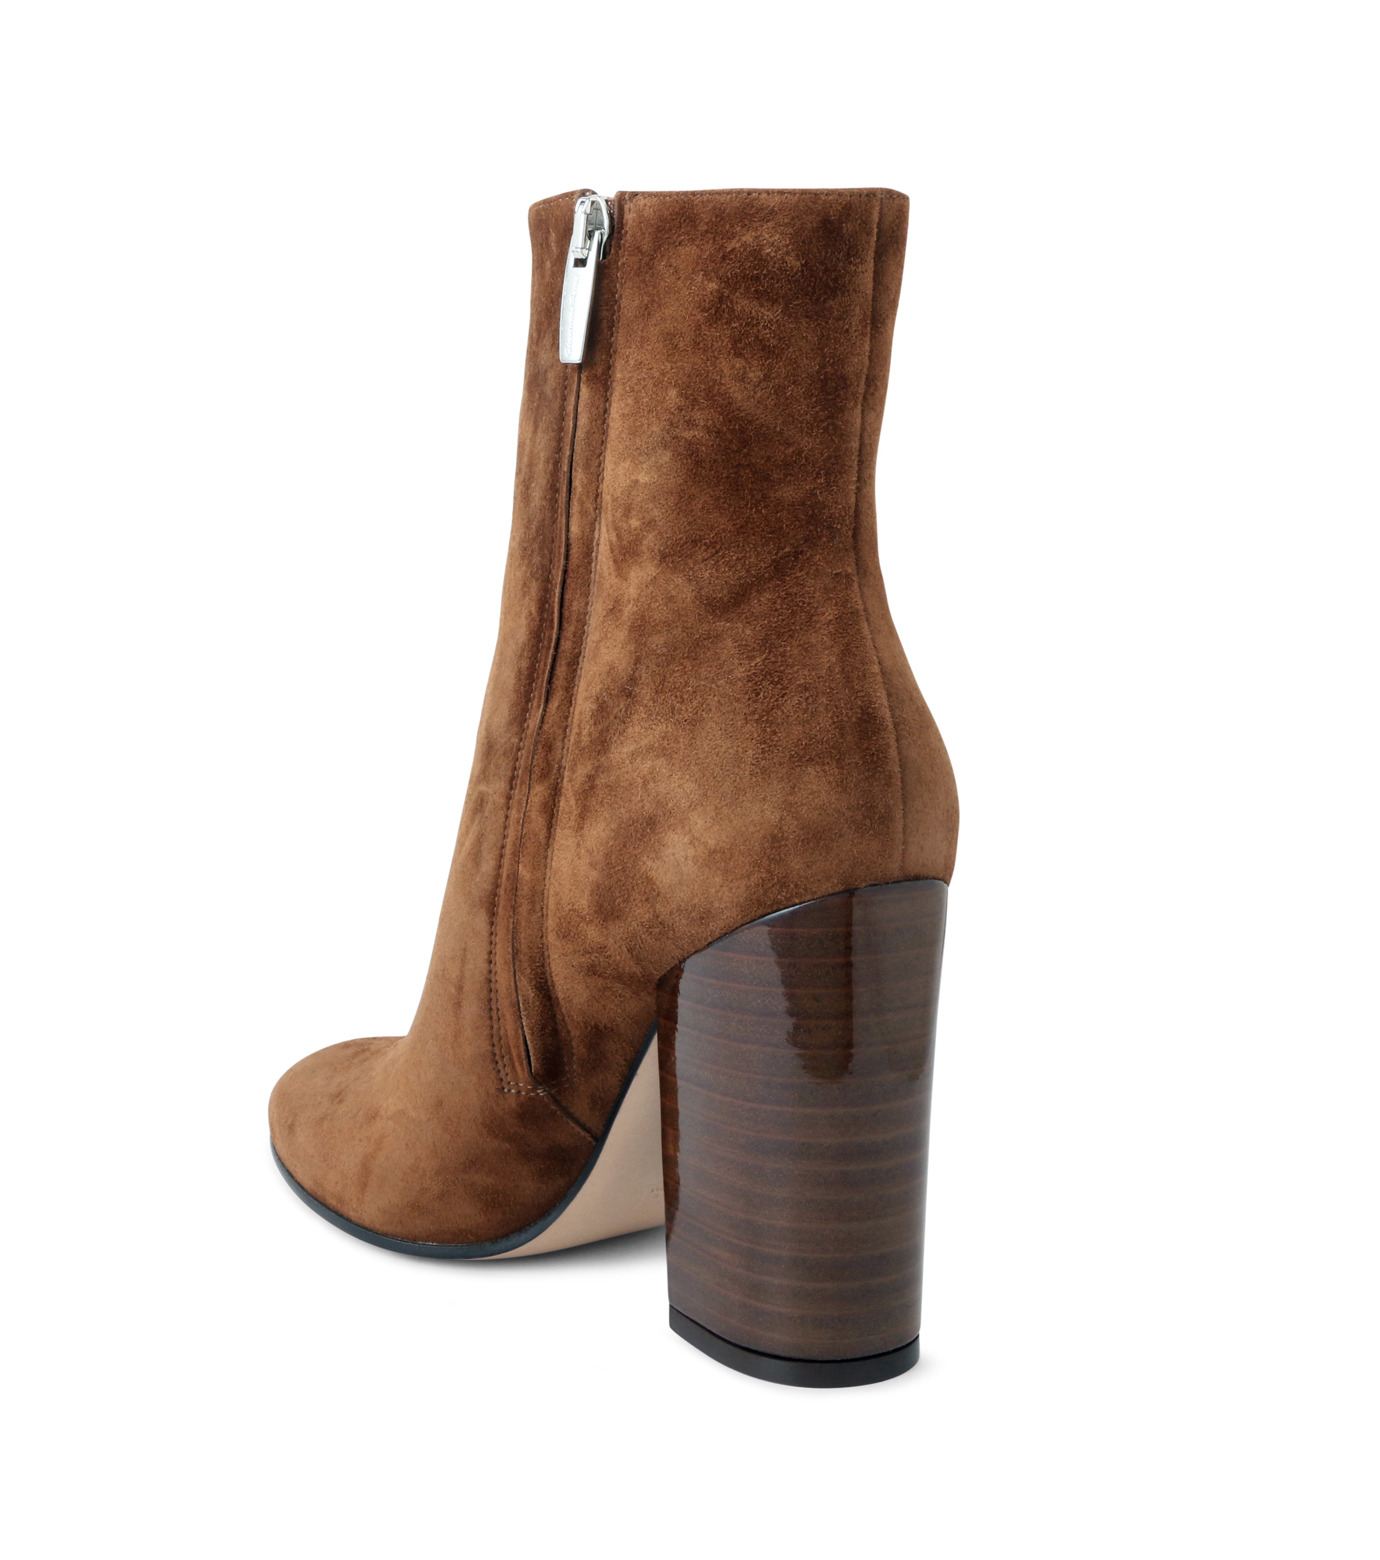 Gianvito Rossi(ジャンヴィト ロッシ)のSuede Short Boots Stucked Heel-CAMEL(ブーツ/boots)-G70546-53 拡大詳細画像2